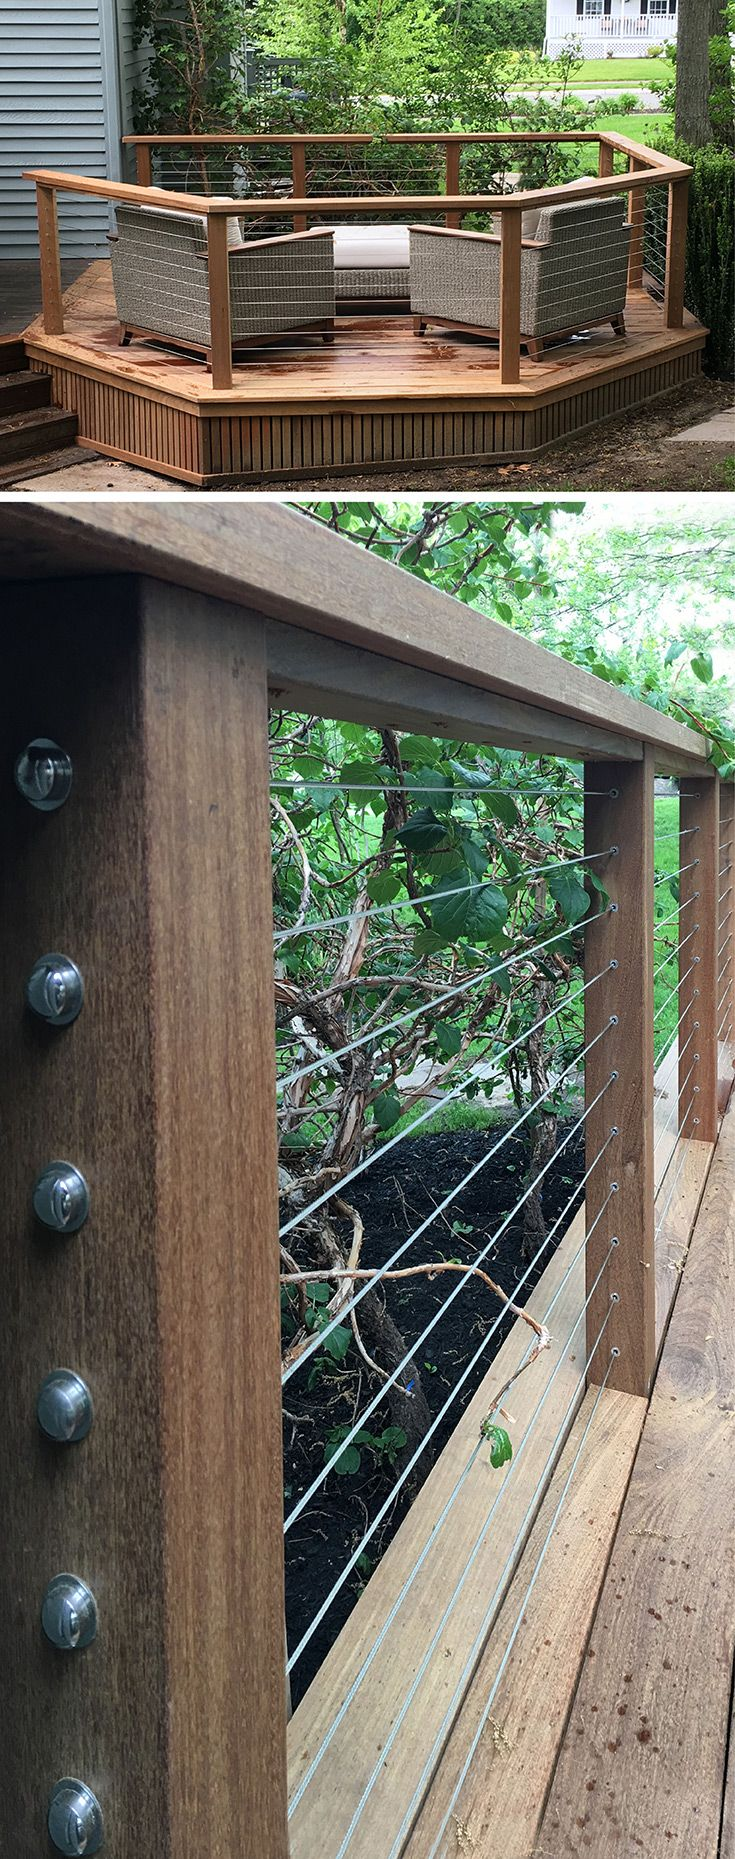 Premier builders' latest award winning project is a natural maple deck with a stainless steel cable rail.